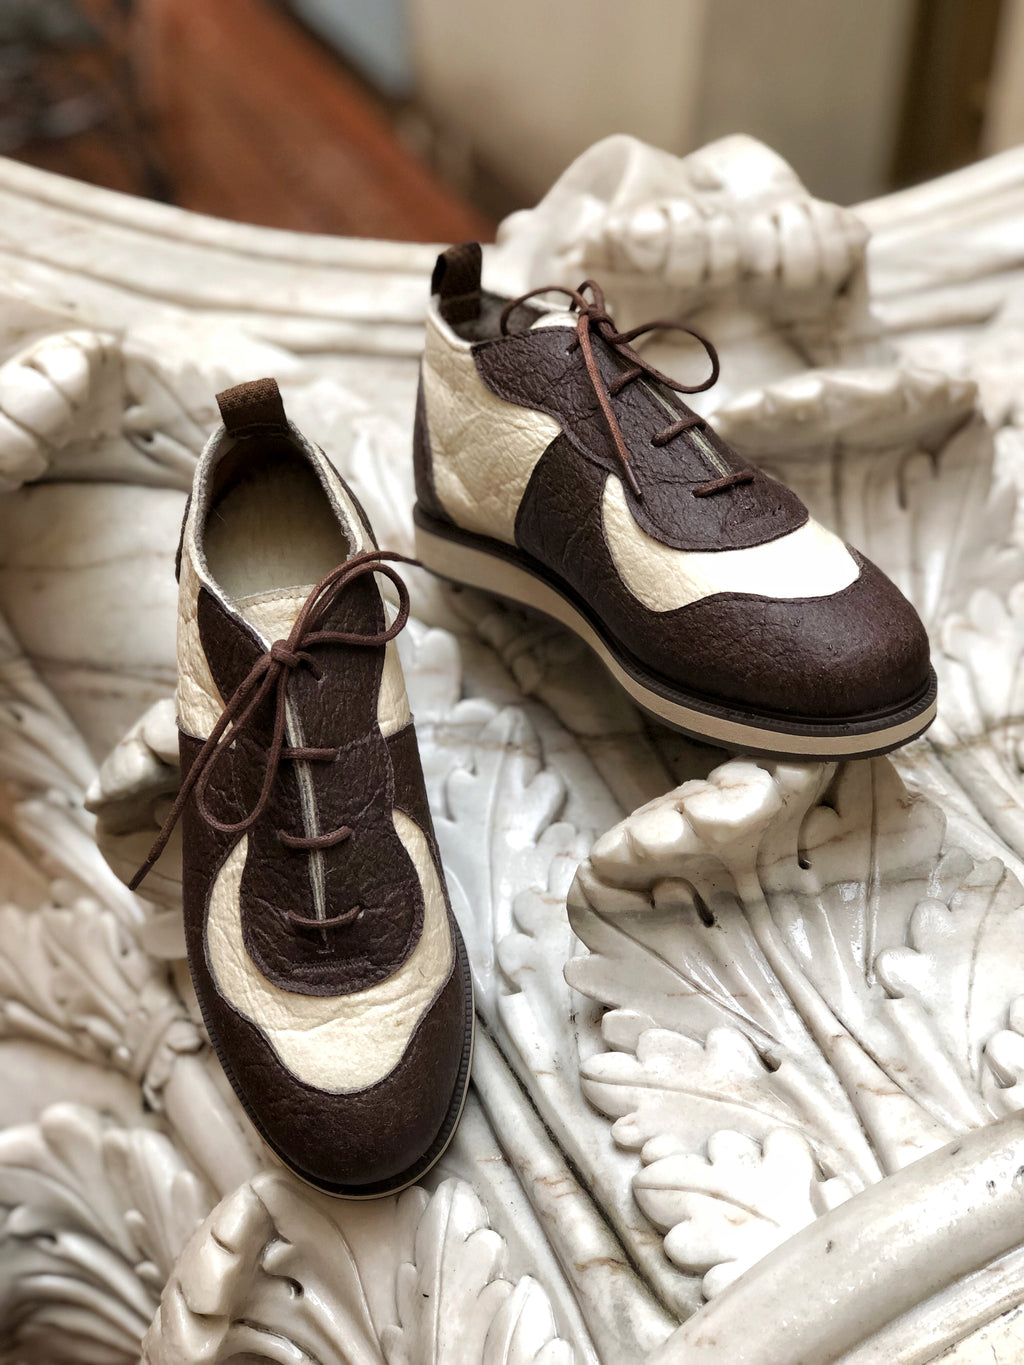 CHOCOLATE BAR shoes